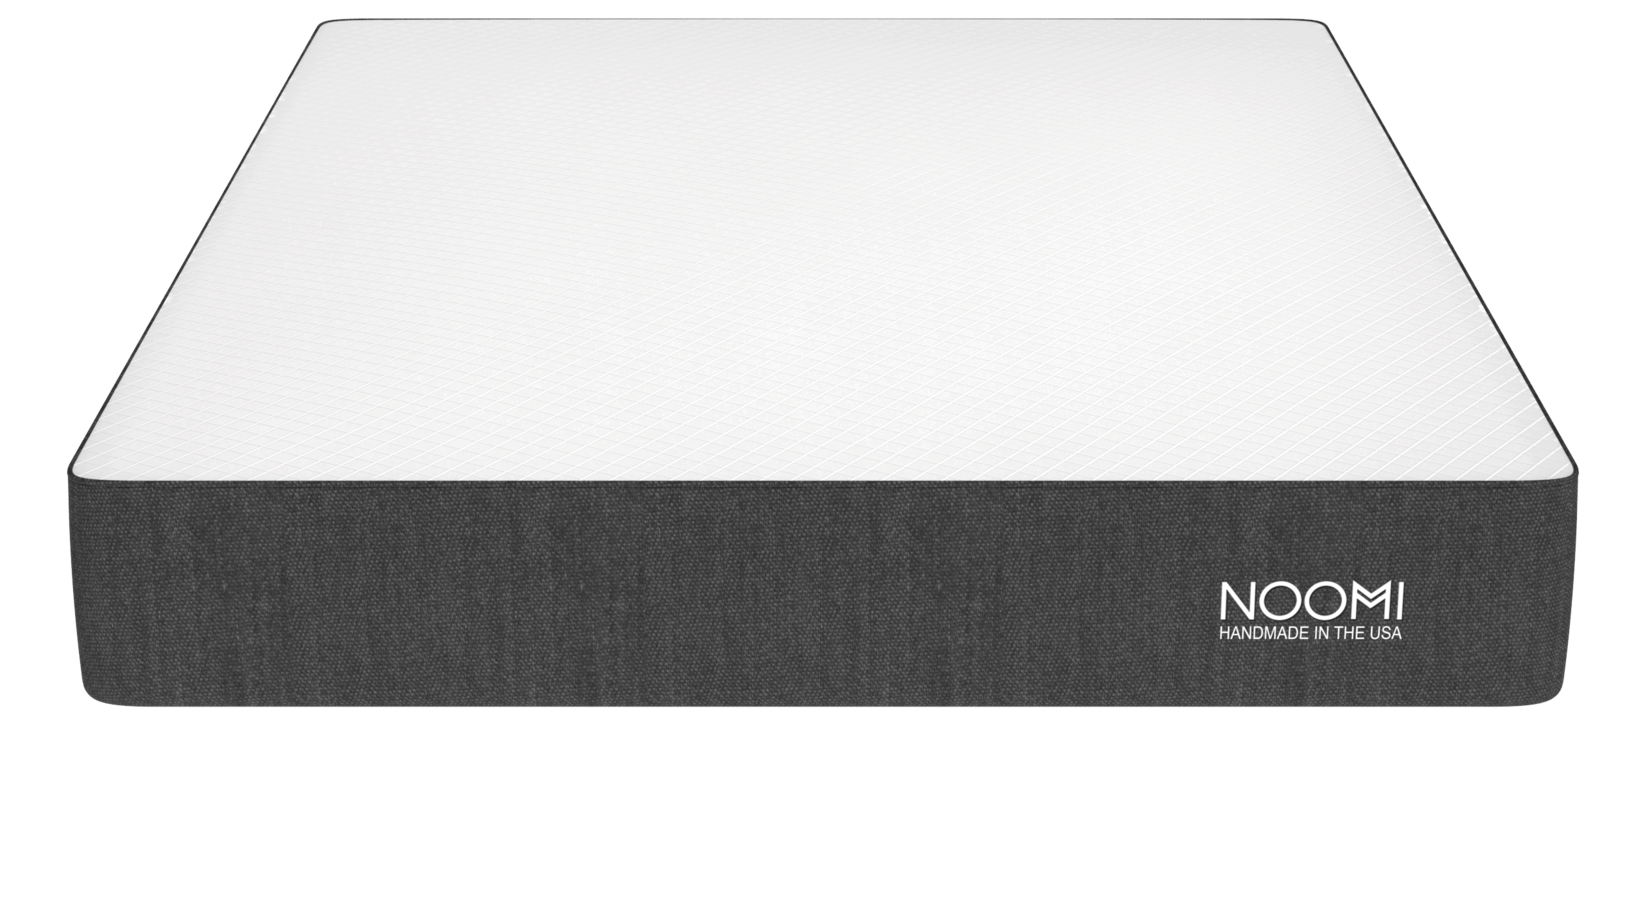 Noomi mattress review - mattress in luxury bedroom